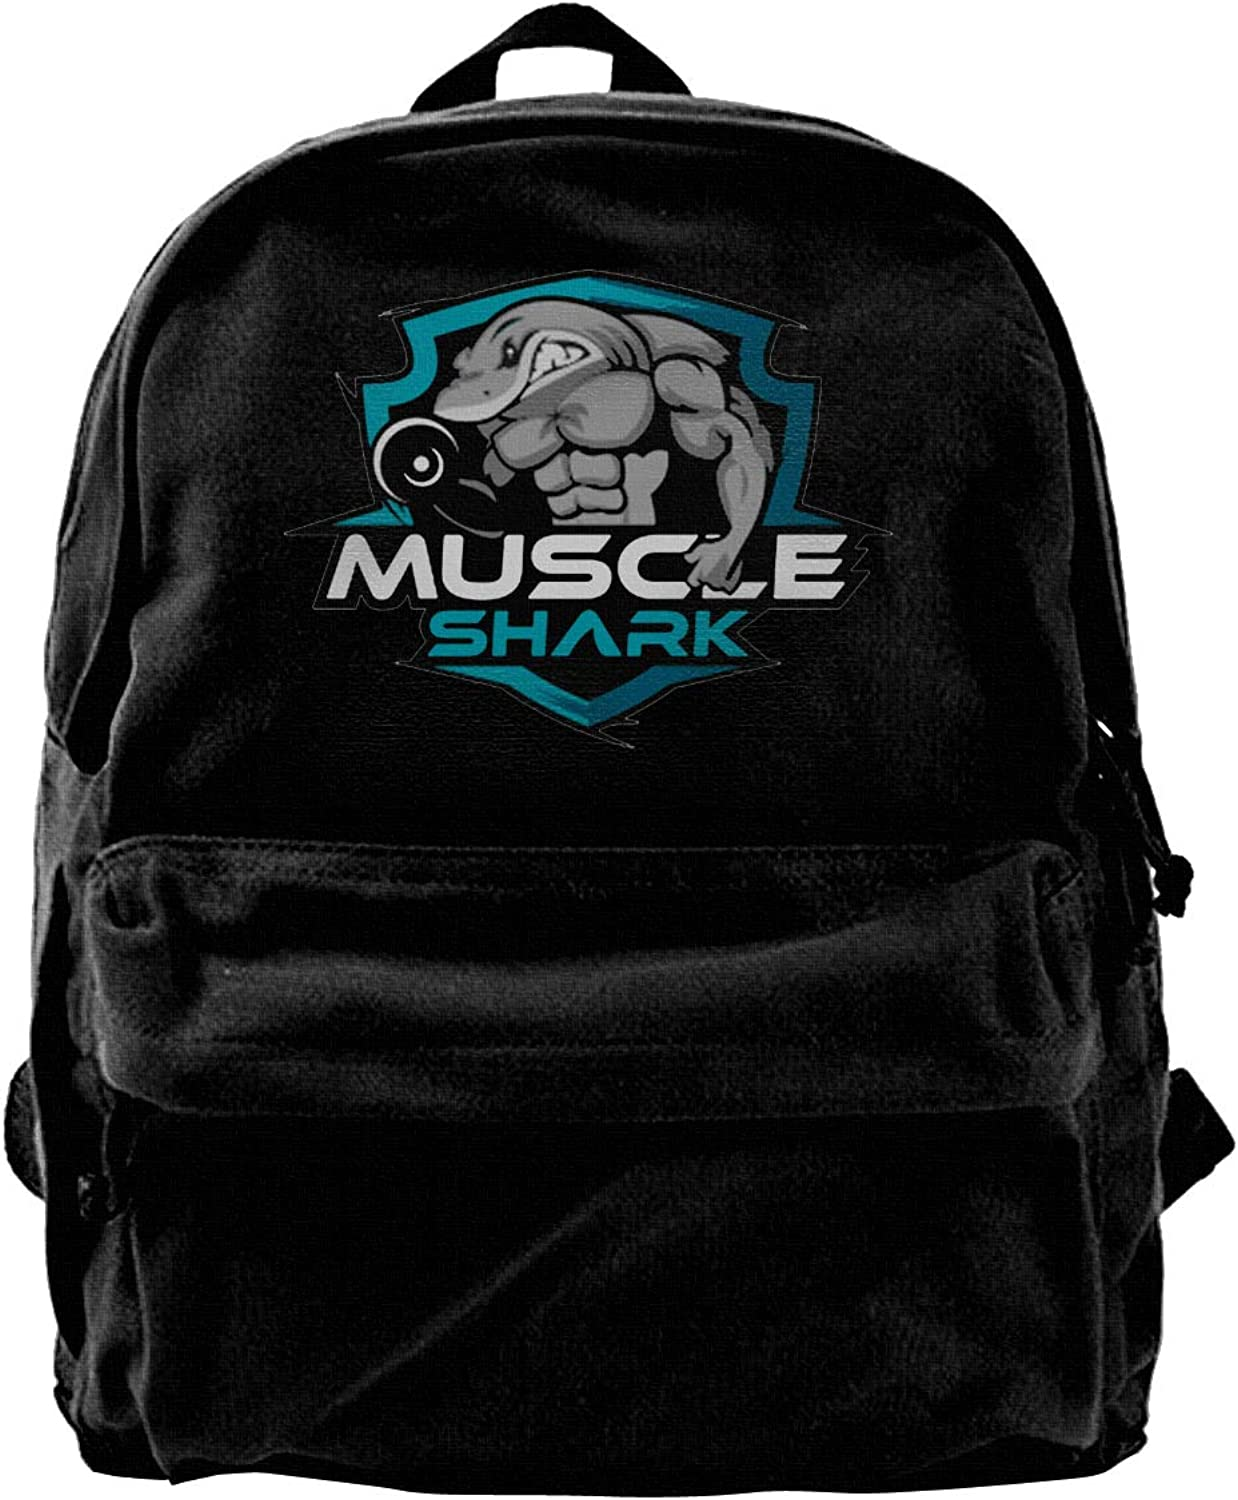 Canvas Backpack Muscle Jose Sharks MVP 14 Inch Laptop Casual School College Bags Travel Rucksack